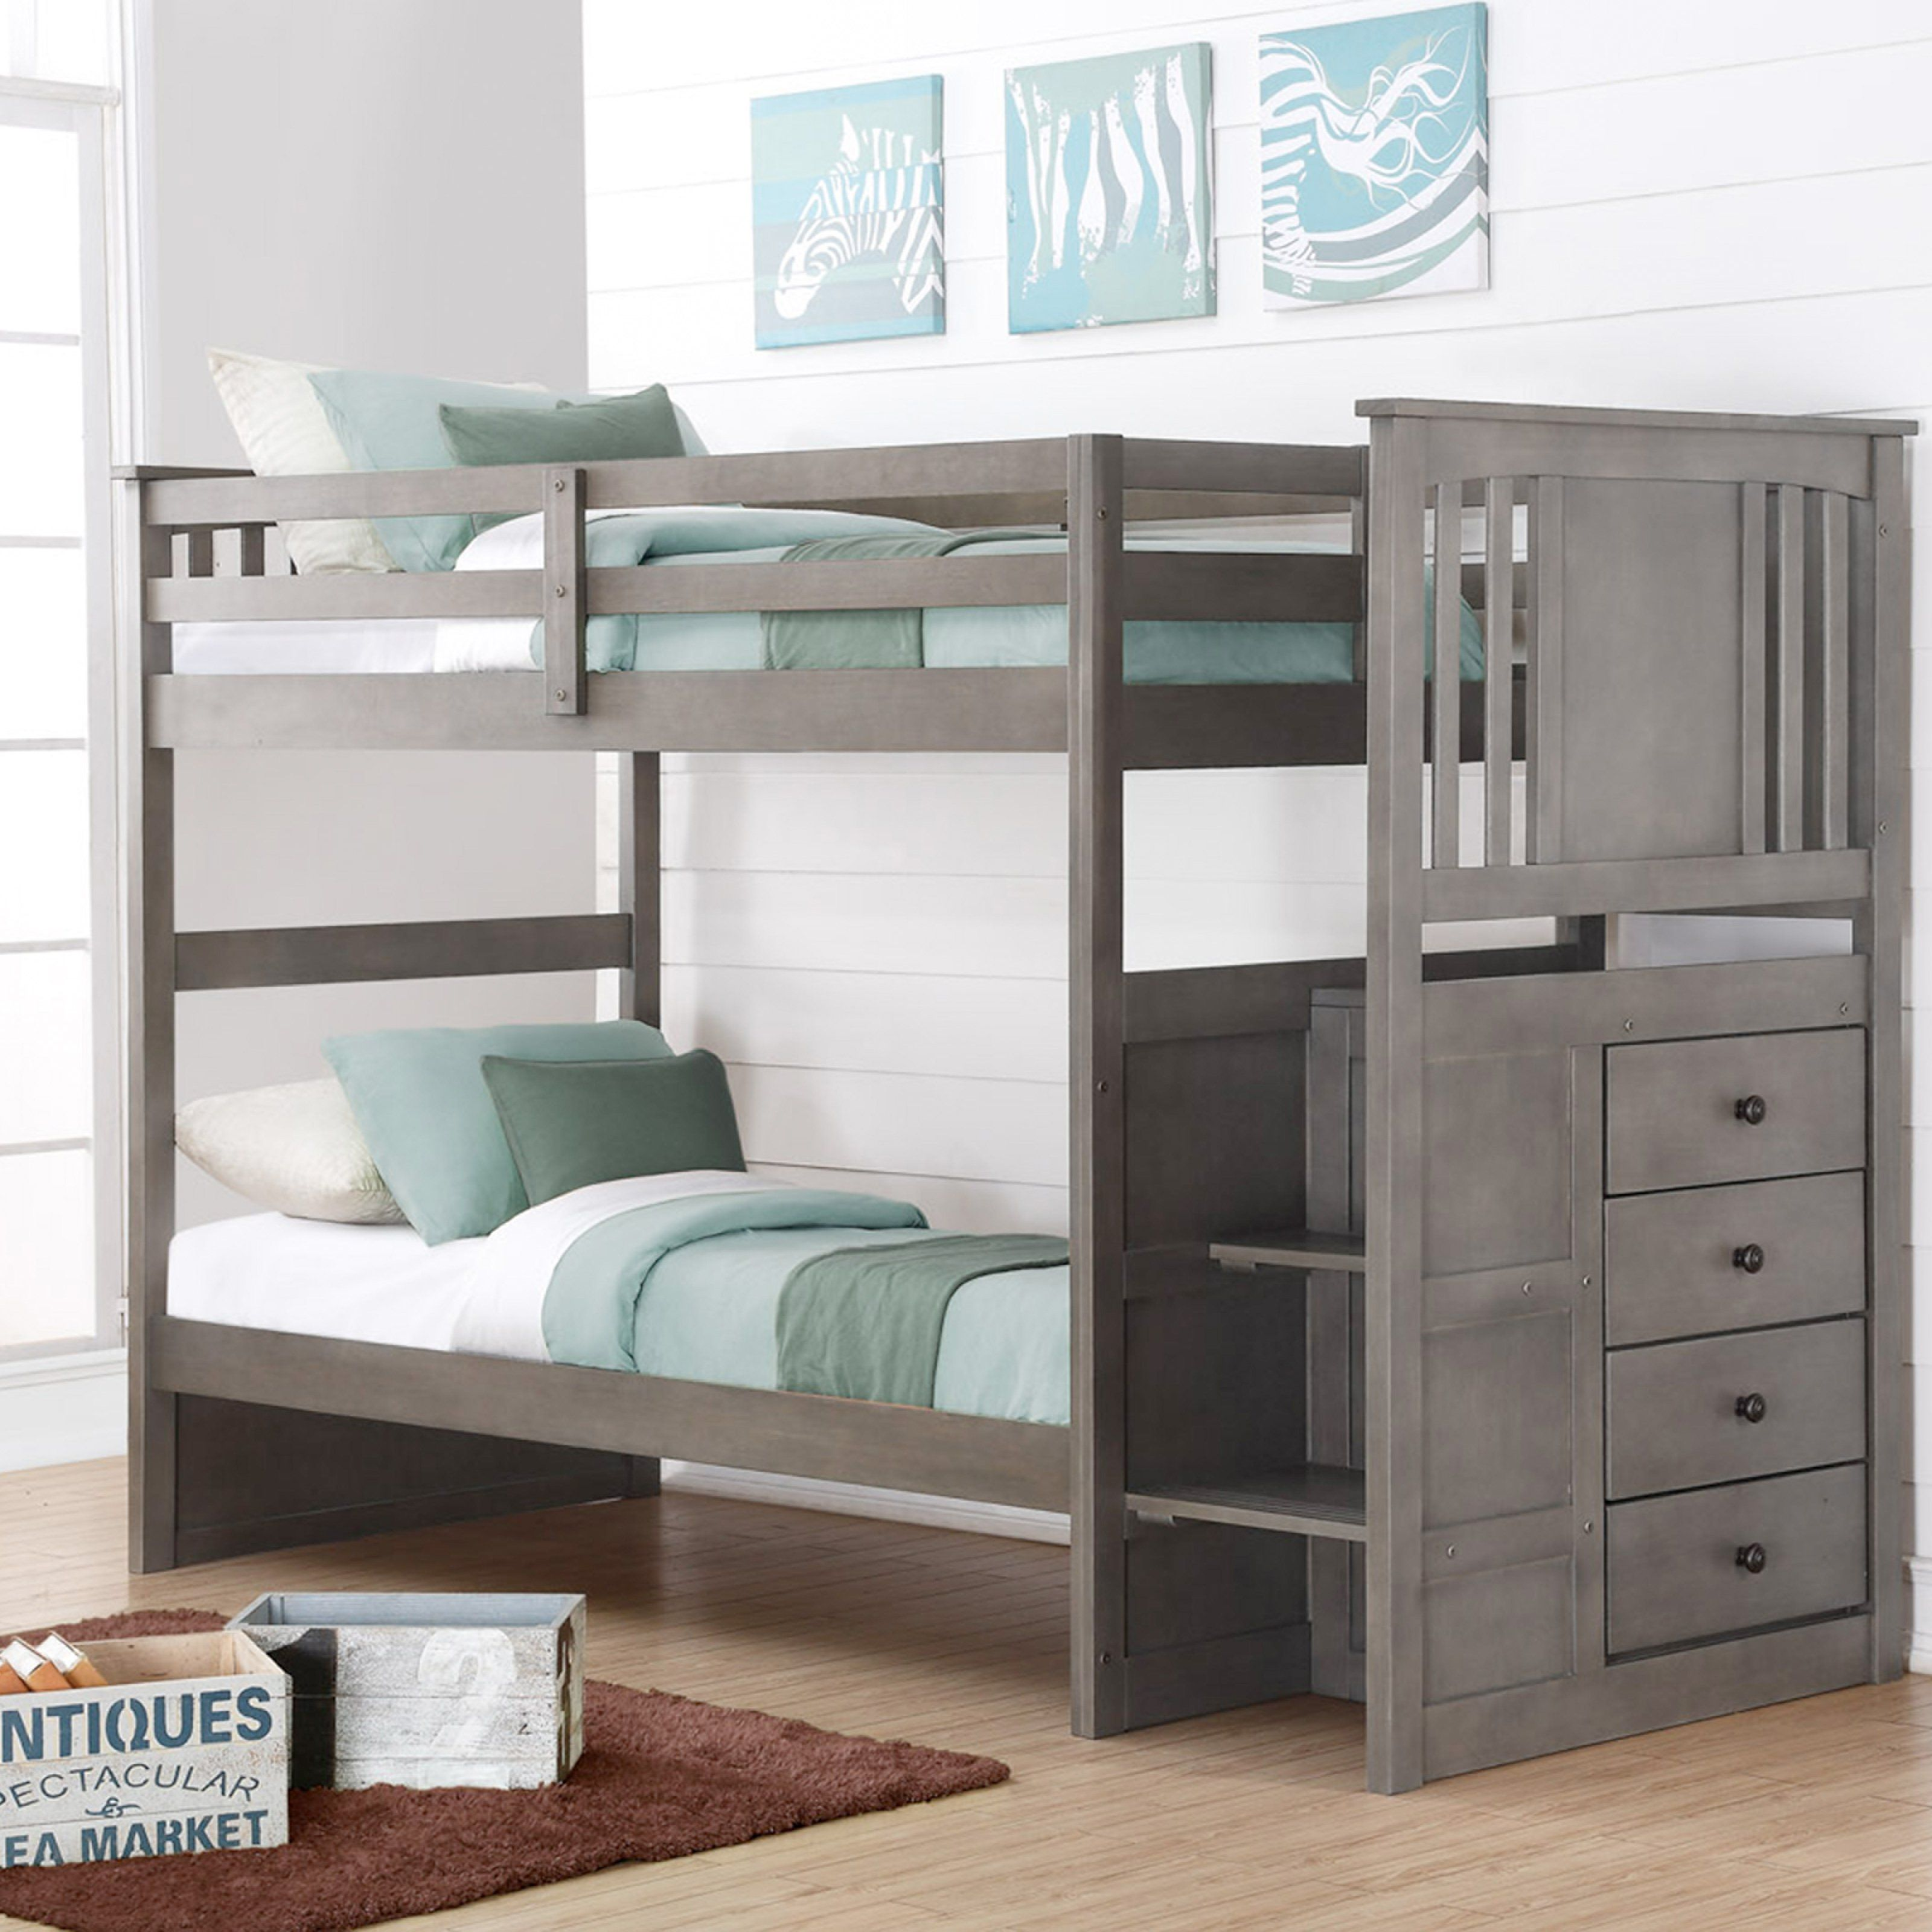 Donco Kids Twin over Twin Stairway Bunk Bed  Slate Gray  from